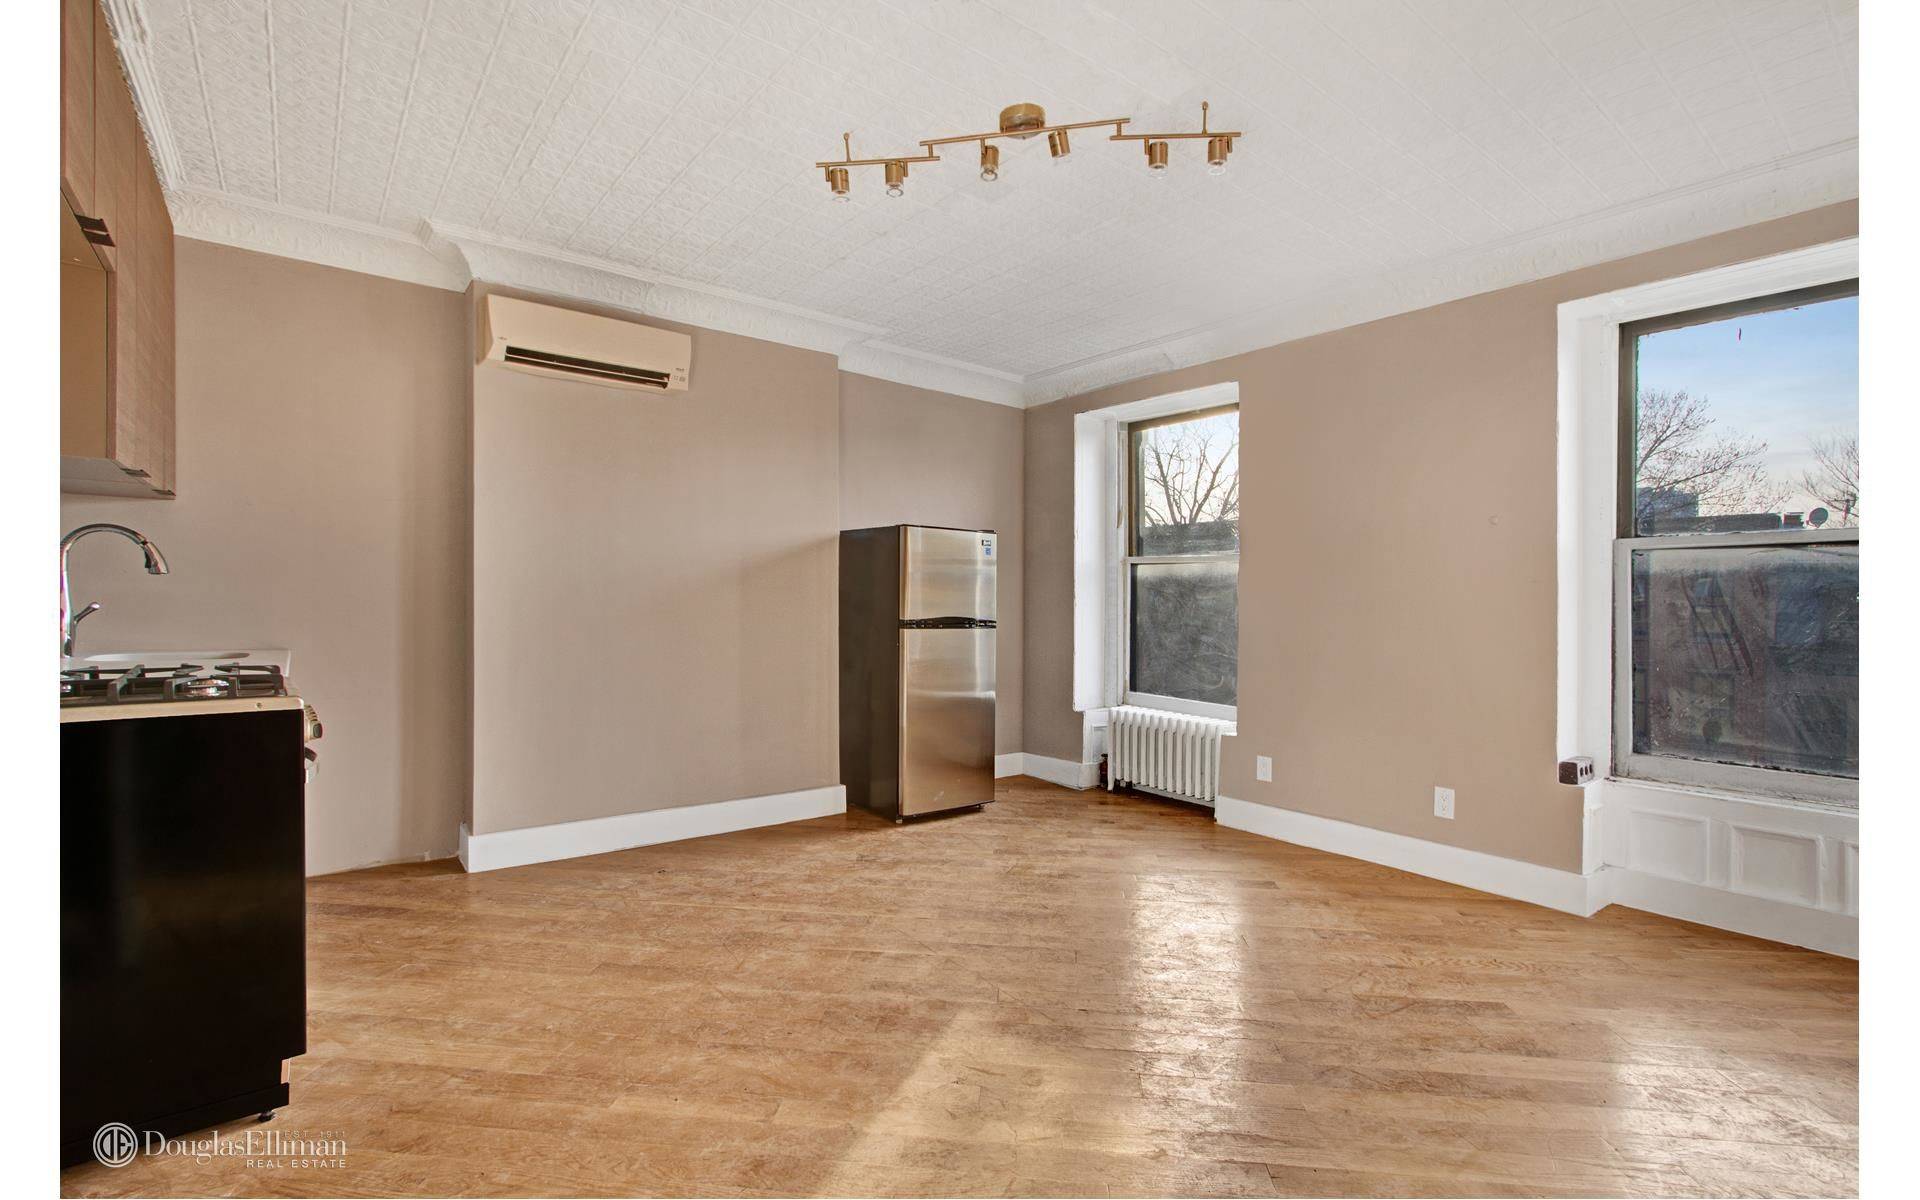 299 Vanderbilt Ave Photo 9 - ELLIMAN-2558258